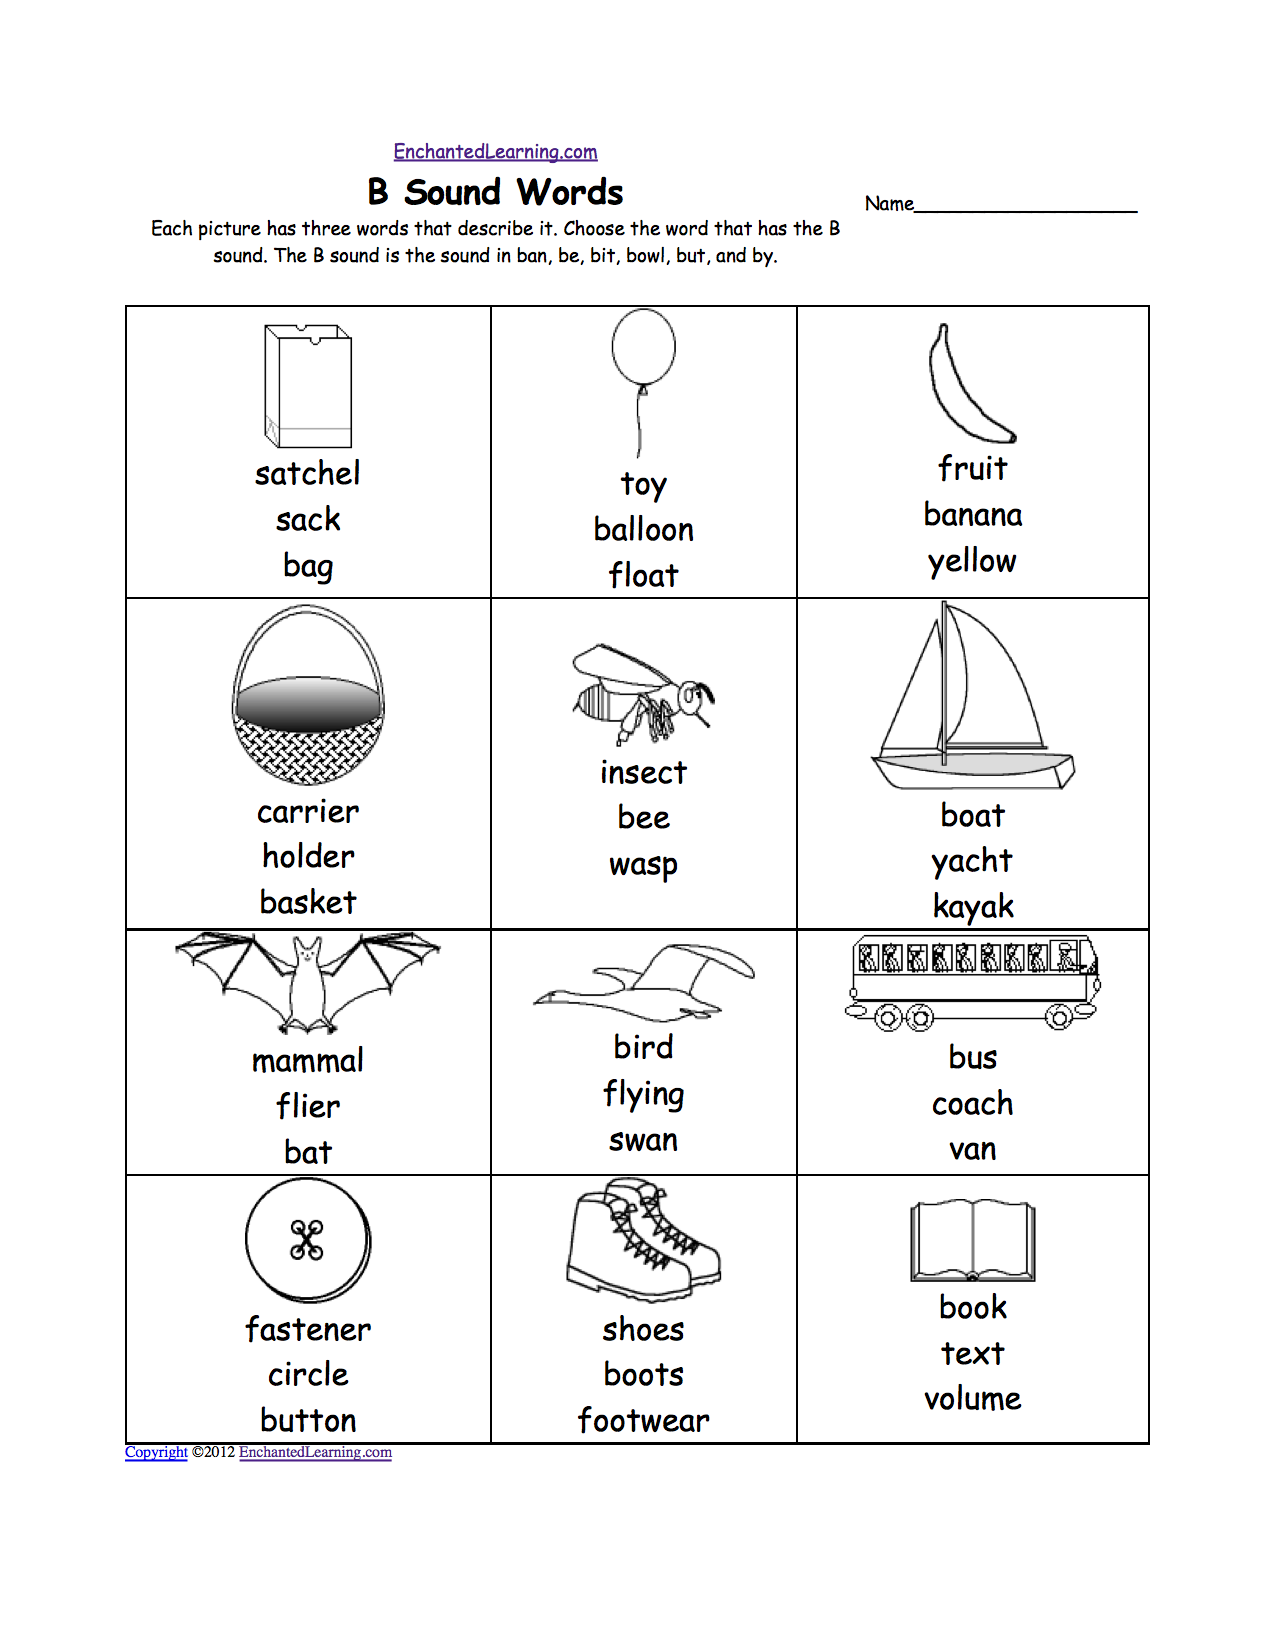 Aldiablosus  Marvellous Phonics Worksheets Multiple Choice Worksheets To Print  With Great Quotbquot Sound Phonics Worksheet Multiple Choice Each Picture Has Three Words That Describe It Choose The Word That Has A Quotbquot Sound The Quotbquot Sound Is The Sound  With Amazing Inferencing Worksheets St Grade Also Multiplying And Dividing By   And  Worksheets In Addition Enzymes Worksheets And Linear Graphing Worksheet As Well As Trigonometry Worksheets Free Additionally Excel Import Worksheet From Enchantedlearningcom With Aldiablosus  Great Phonics Worksheets Multiple Choice Worksheets To Print  With Amazing Quotbquot Sound Phonics Worksheet Multiple Choice Each Picture Has Three Words That Describe It Choose The Word That Has A Quotbquot Sound The Quotbquot Sound Is The Sound  And Marvellous Inferencing Worksheets St Grade Also Multiplying And Dividing By   And  Worksheets In Addition Enzymes Worksheets From Enchantedlearningcom